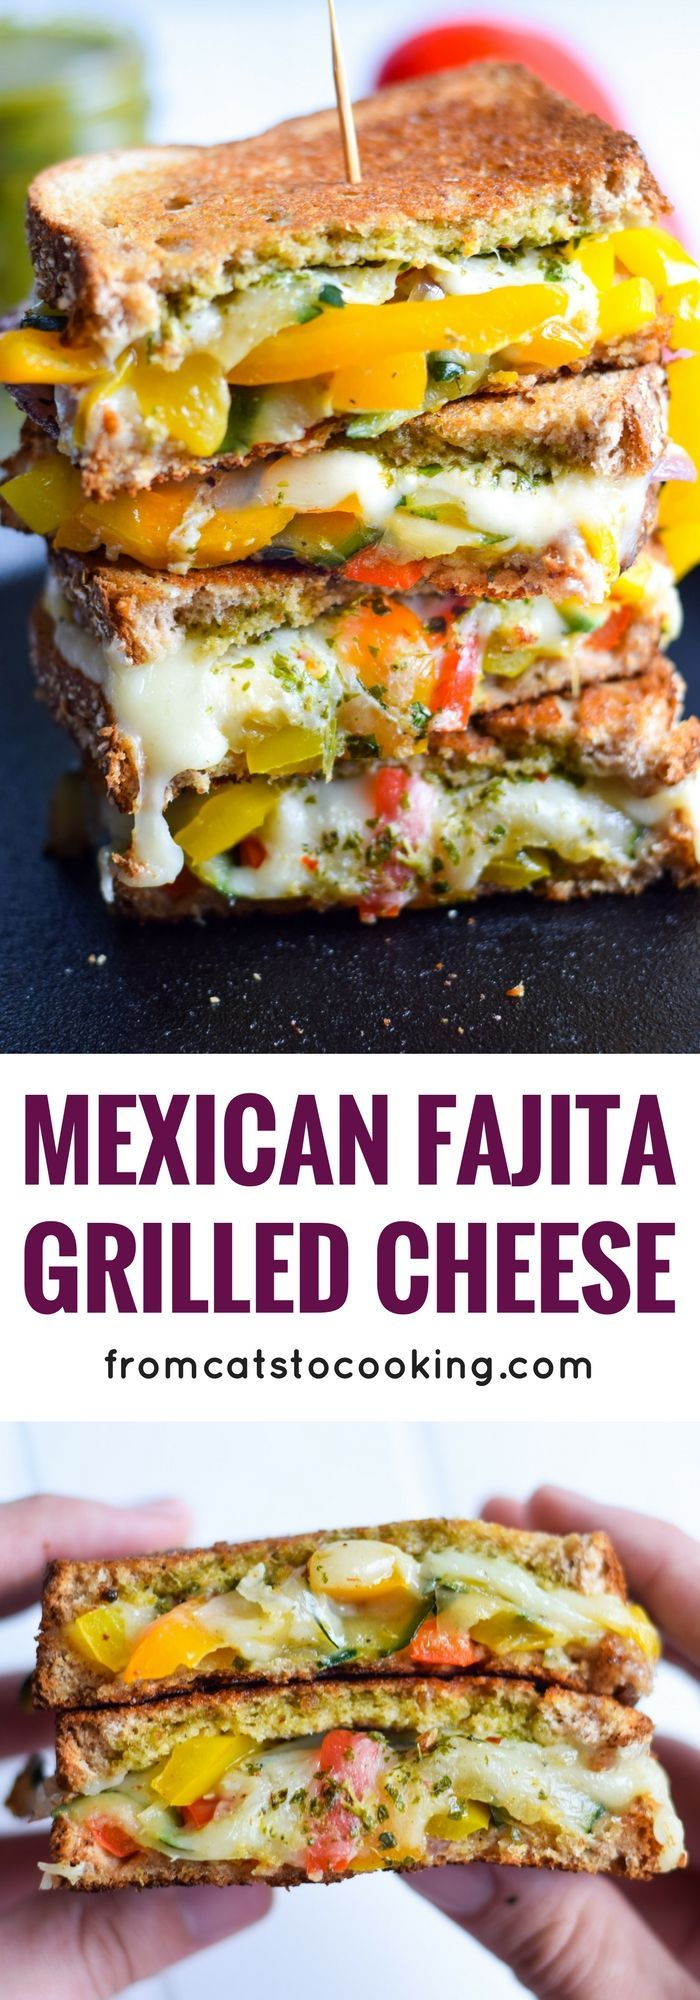 Made with sautéed vegetables, a cilantro parsley chimichurri spread and lots of melted cheese, this Mexican Fajita Grilled Cheese will leave you full and oh so happy. (vegetarian)